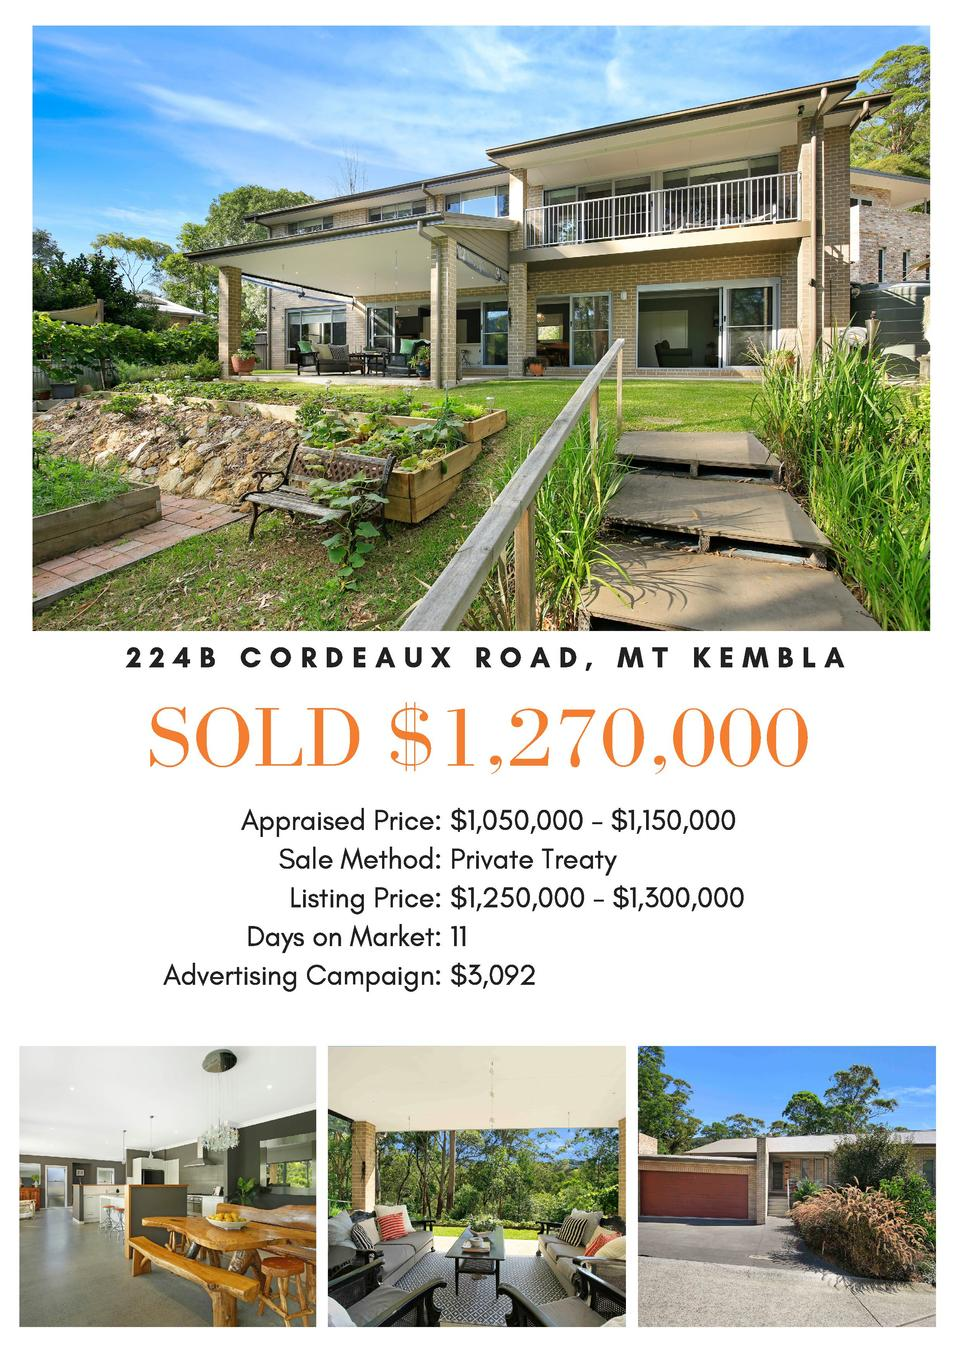 224B CORDEAUX ROAD, MT KEMBLA  SOLD  1,270,000 Appraised Price   1,050,000 -  1,150,000 Sale Method  Private Treaty Listin...